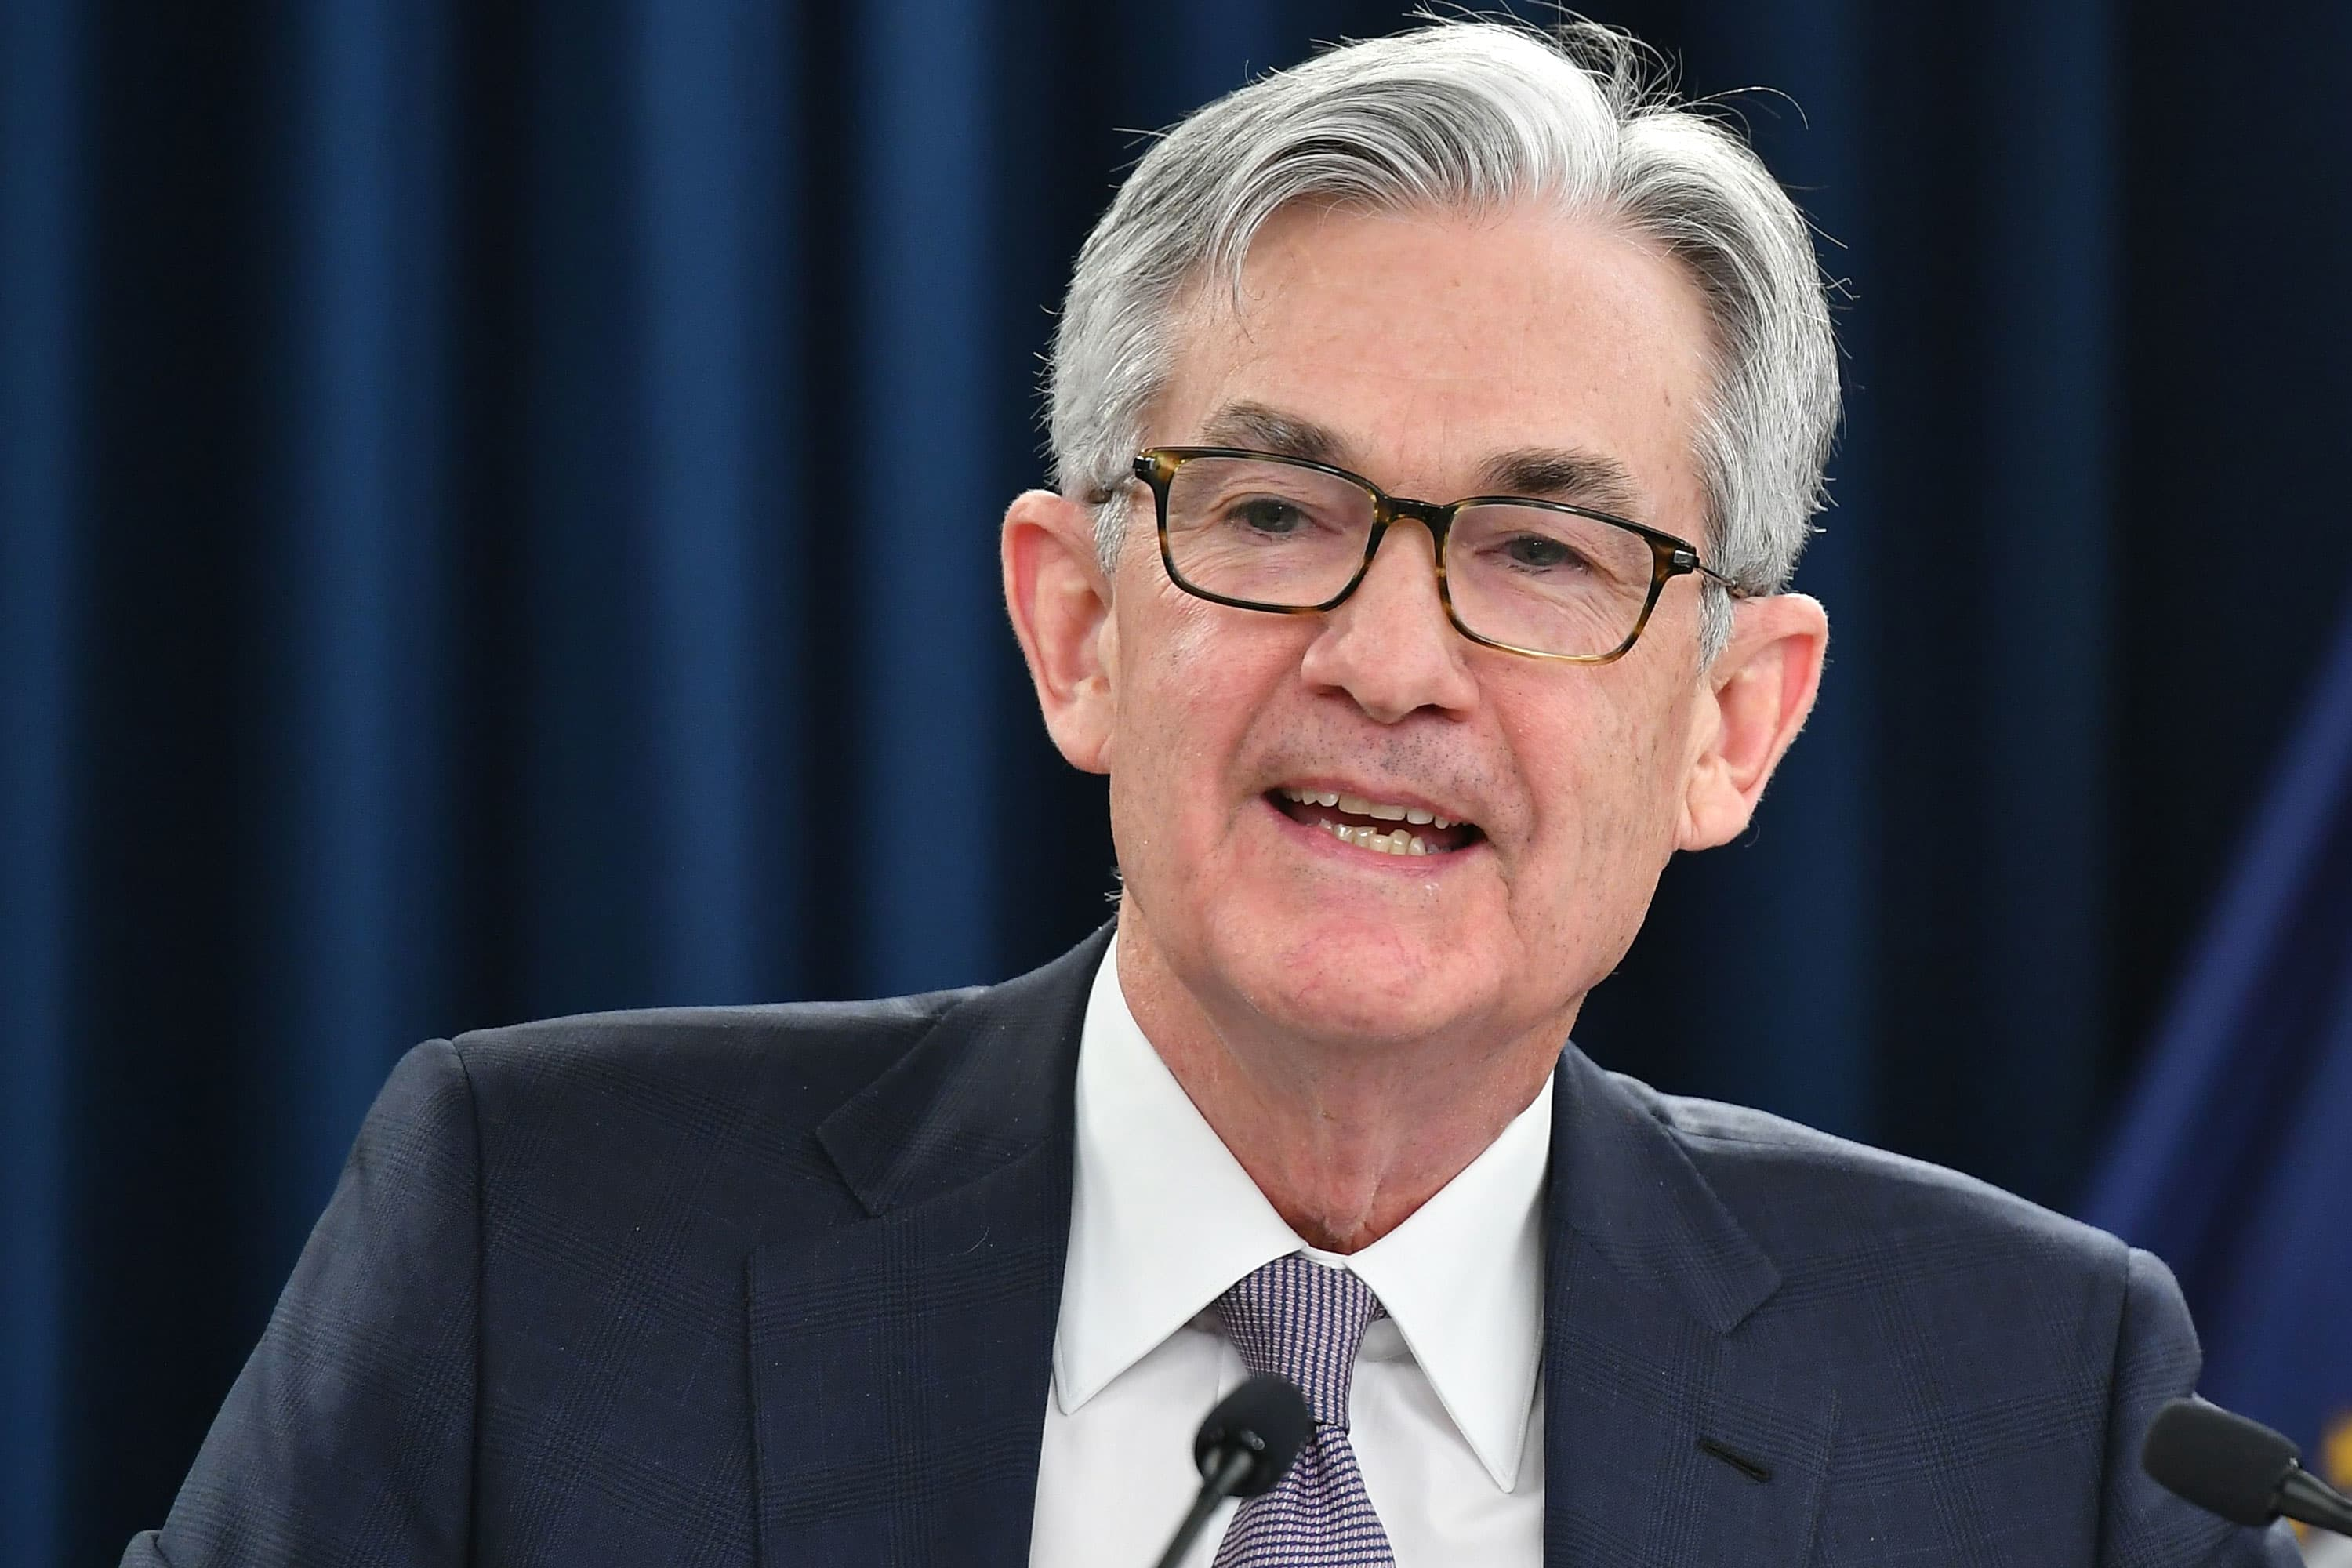 The Fed could could still move markets Wednesday even with rates on hold for the foreseeable